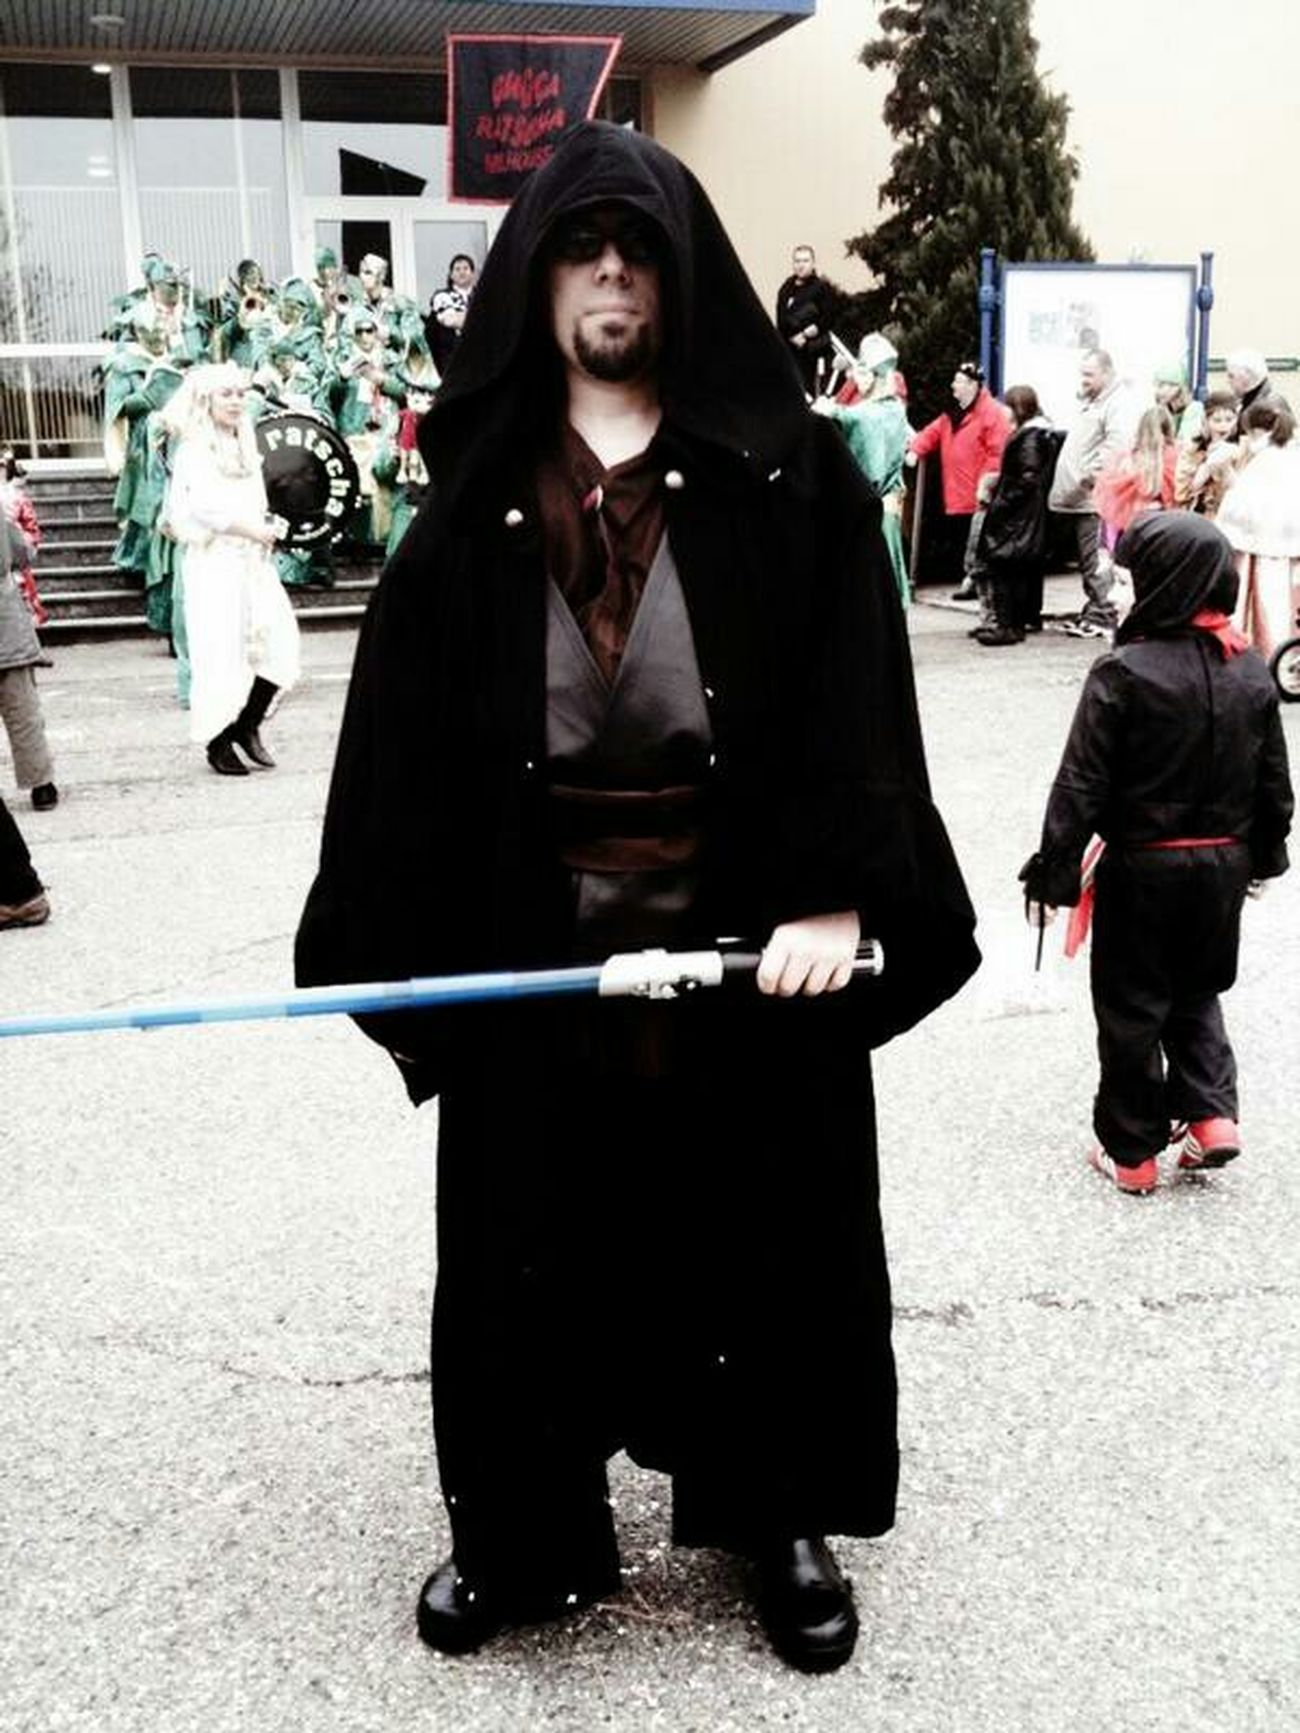 May the 4th be with you ! Happy Starwars Day ! Starwars MayThe4thBeWithYou MayTheForceBeWithyou, me cosplay à Jedi !